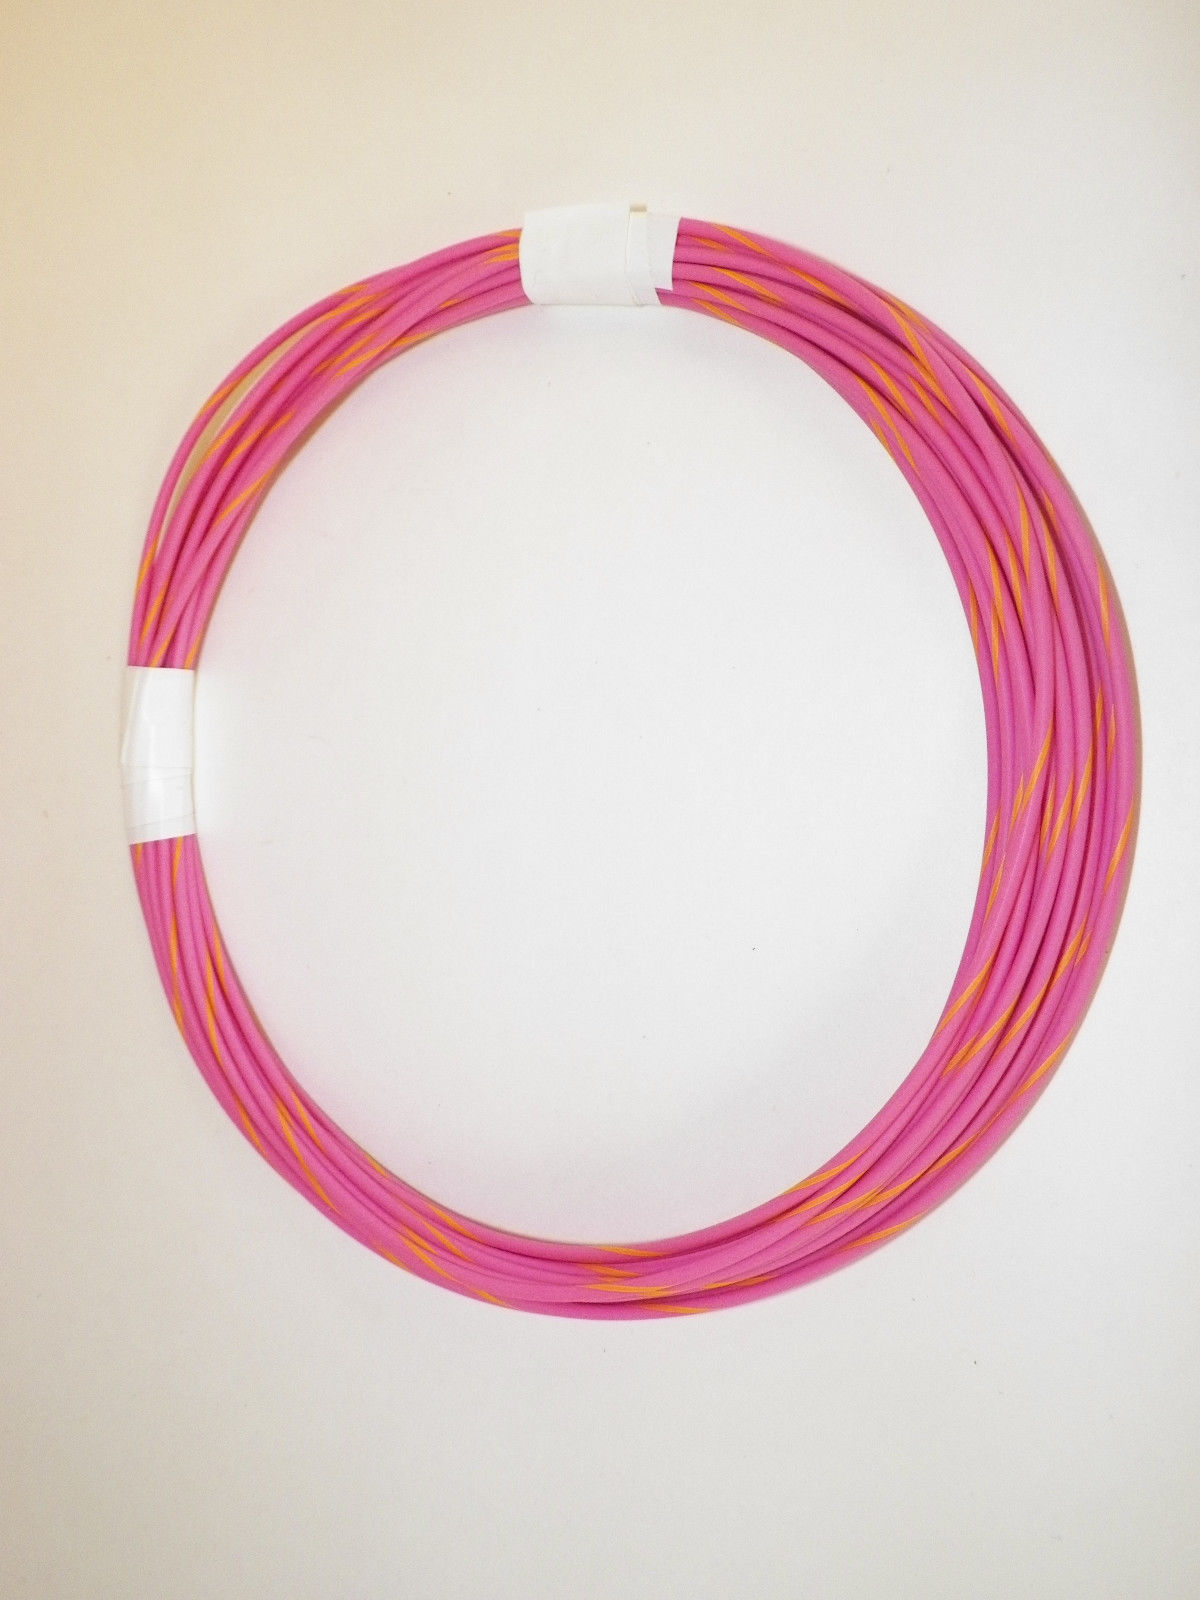 PINK AUTOMOTIVE  WIRE 16 GAUGE HIGH TEMP GXL  25 FEET STRIPED AVAILABLE